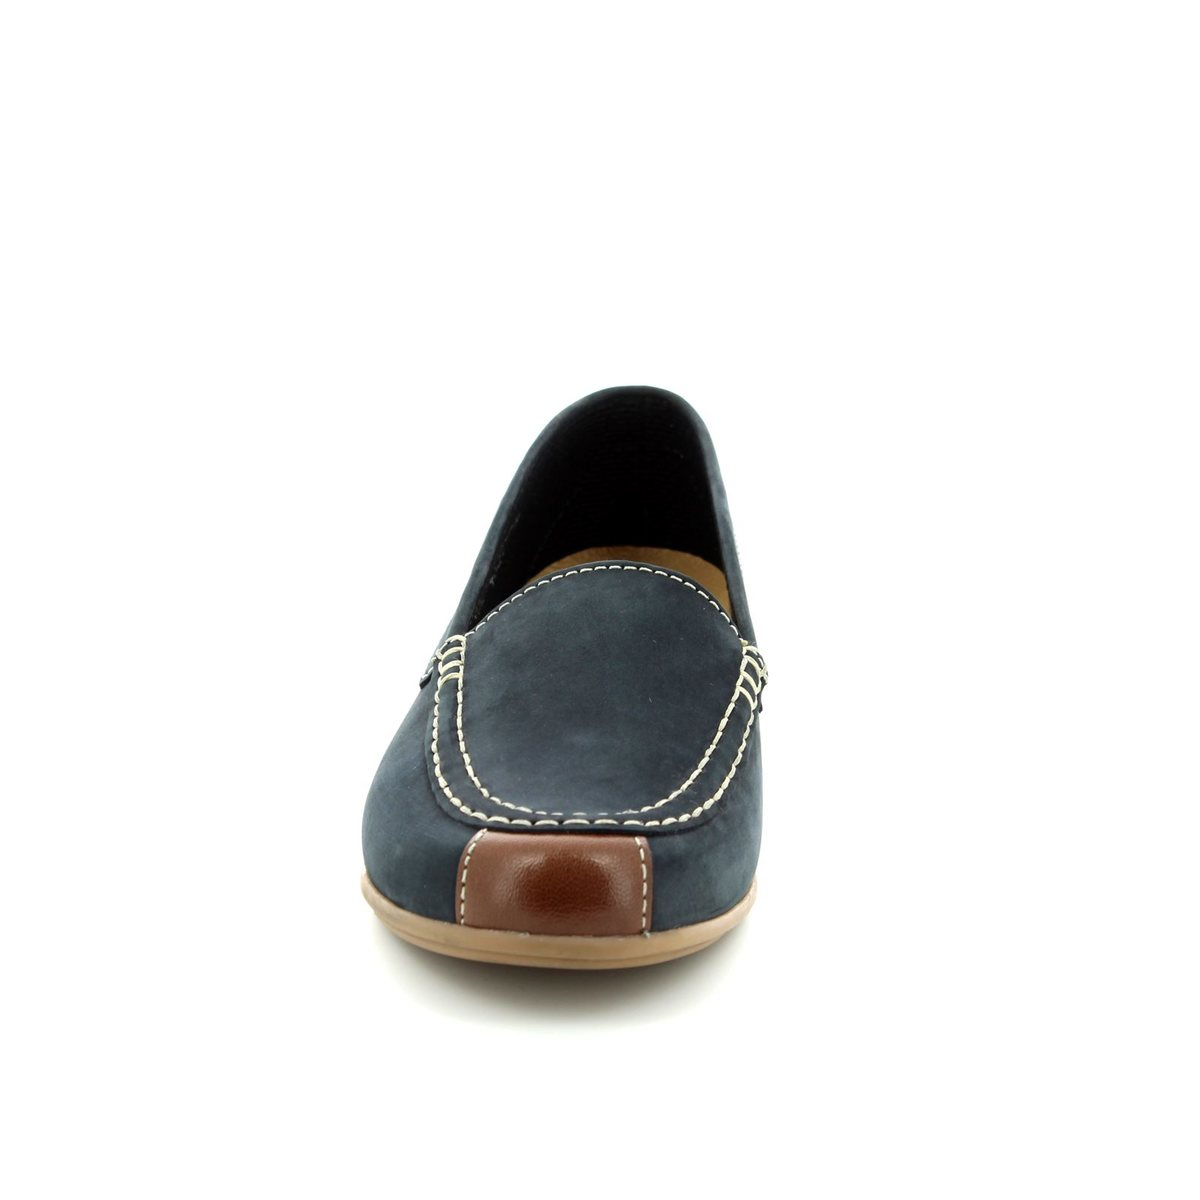 daf9accf4fe Gabor Loafers - Navy-tan - 83.260.16 LOIS